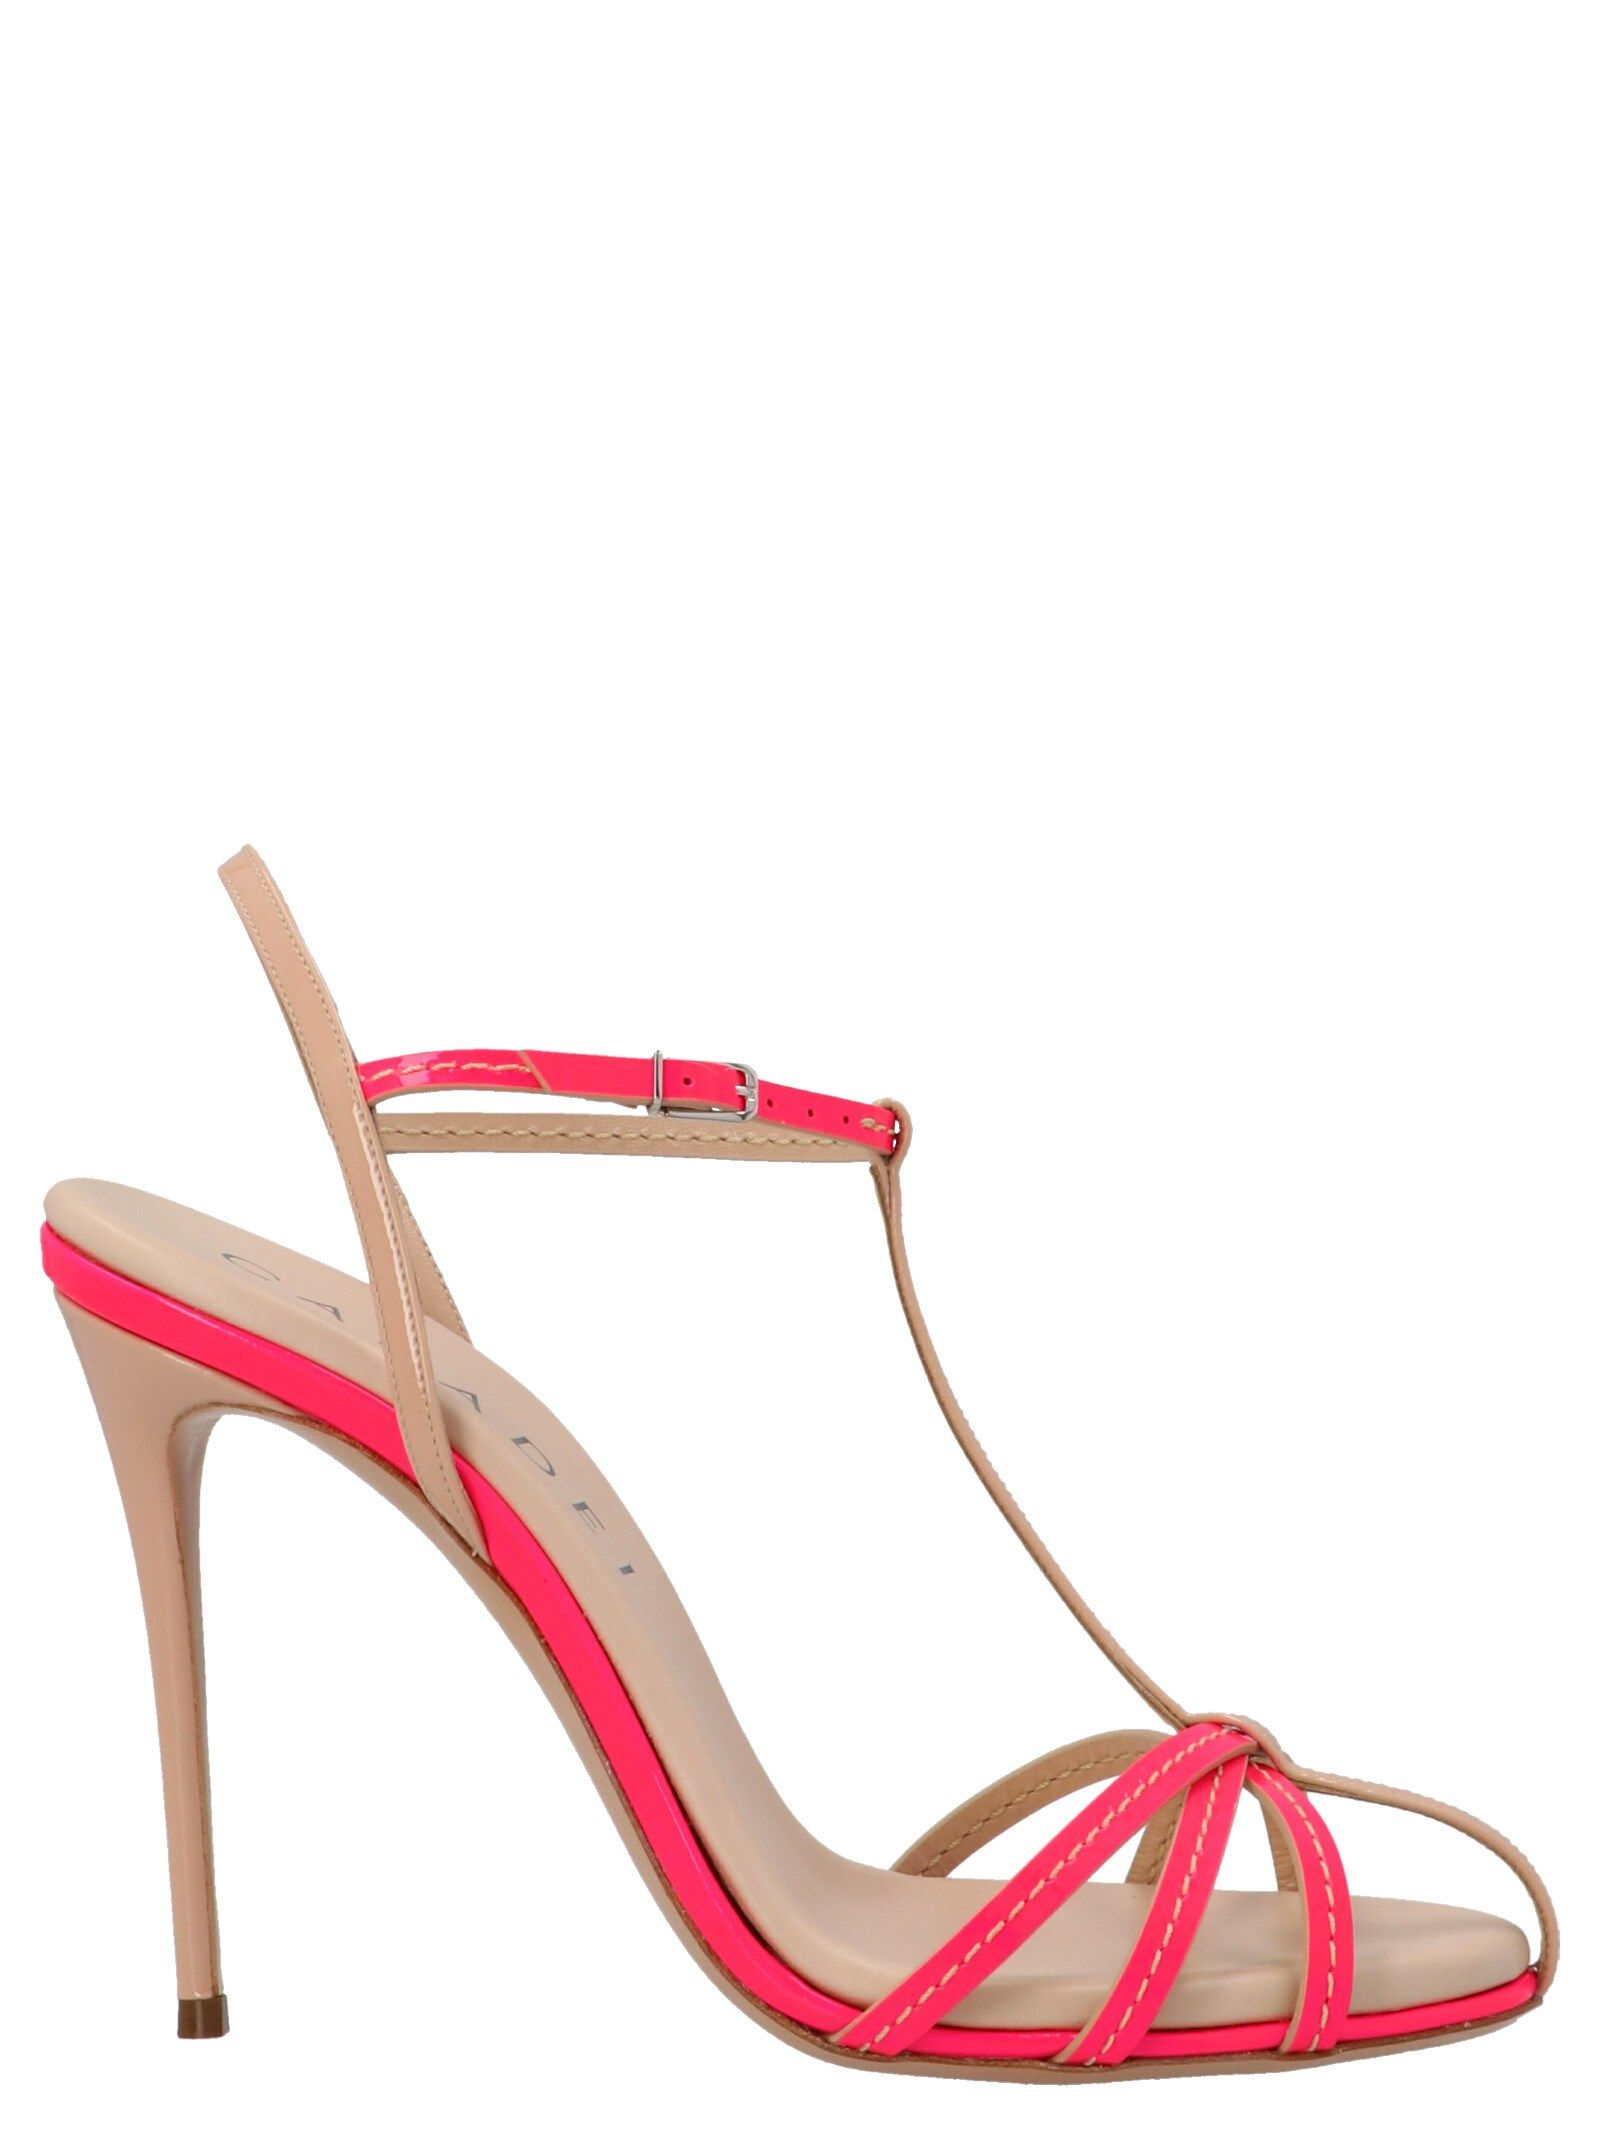 Casadei Leathers CASADEI WOMEN'S 1L752S1001T0253A786 FUCHSIA OTHER MATERIALS SANDALS